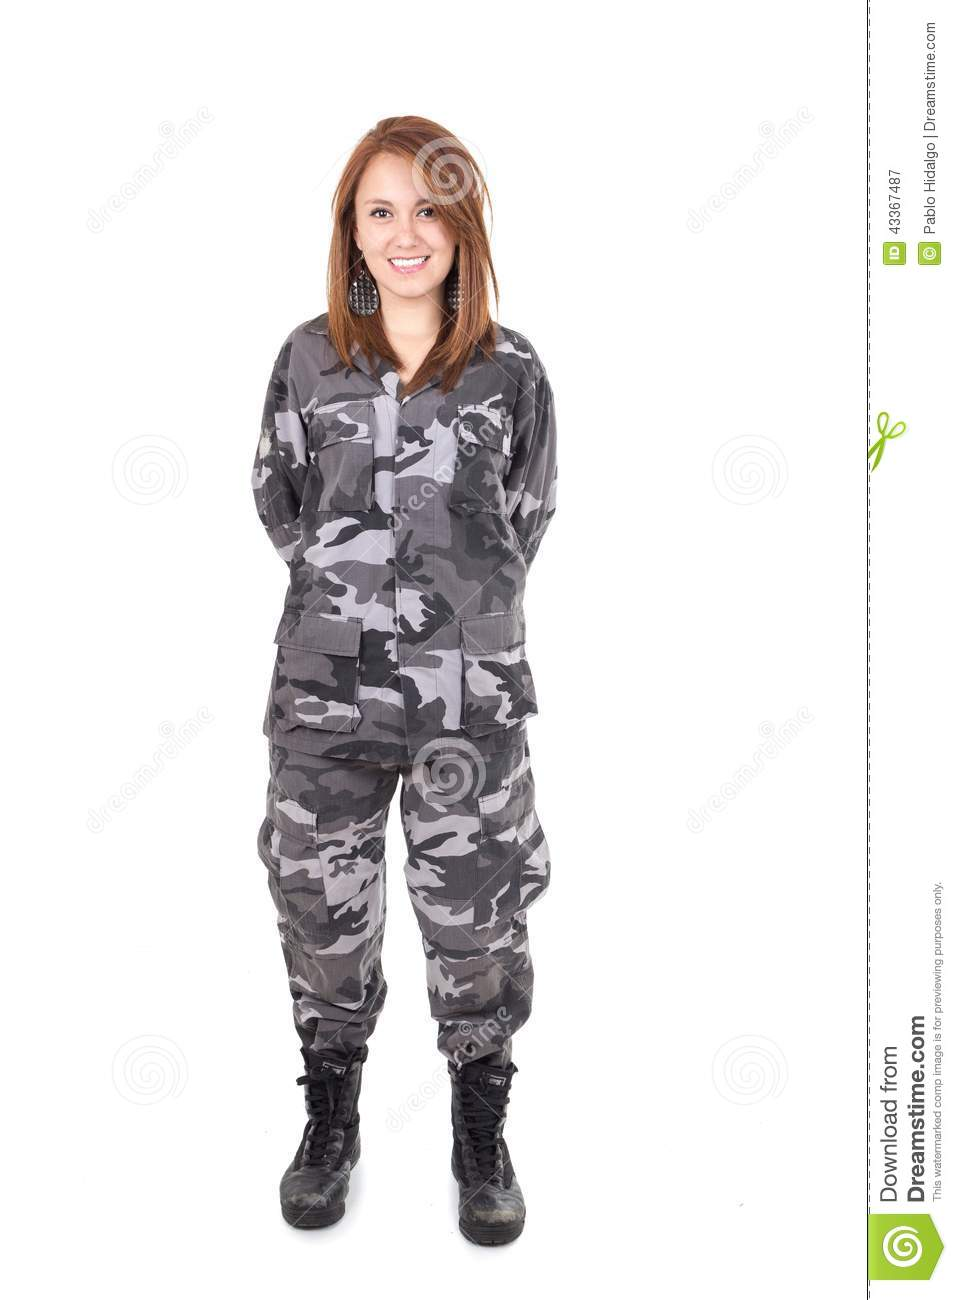 Pretty Young Girl Wearing Military Uniform Stock Photo Image 43367487